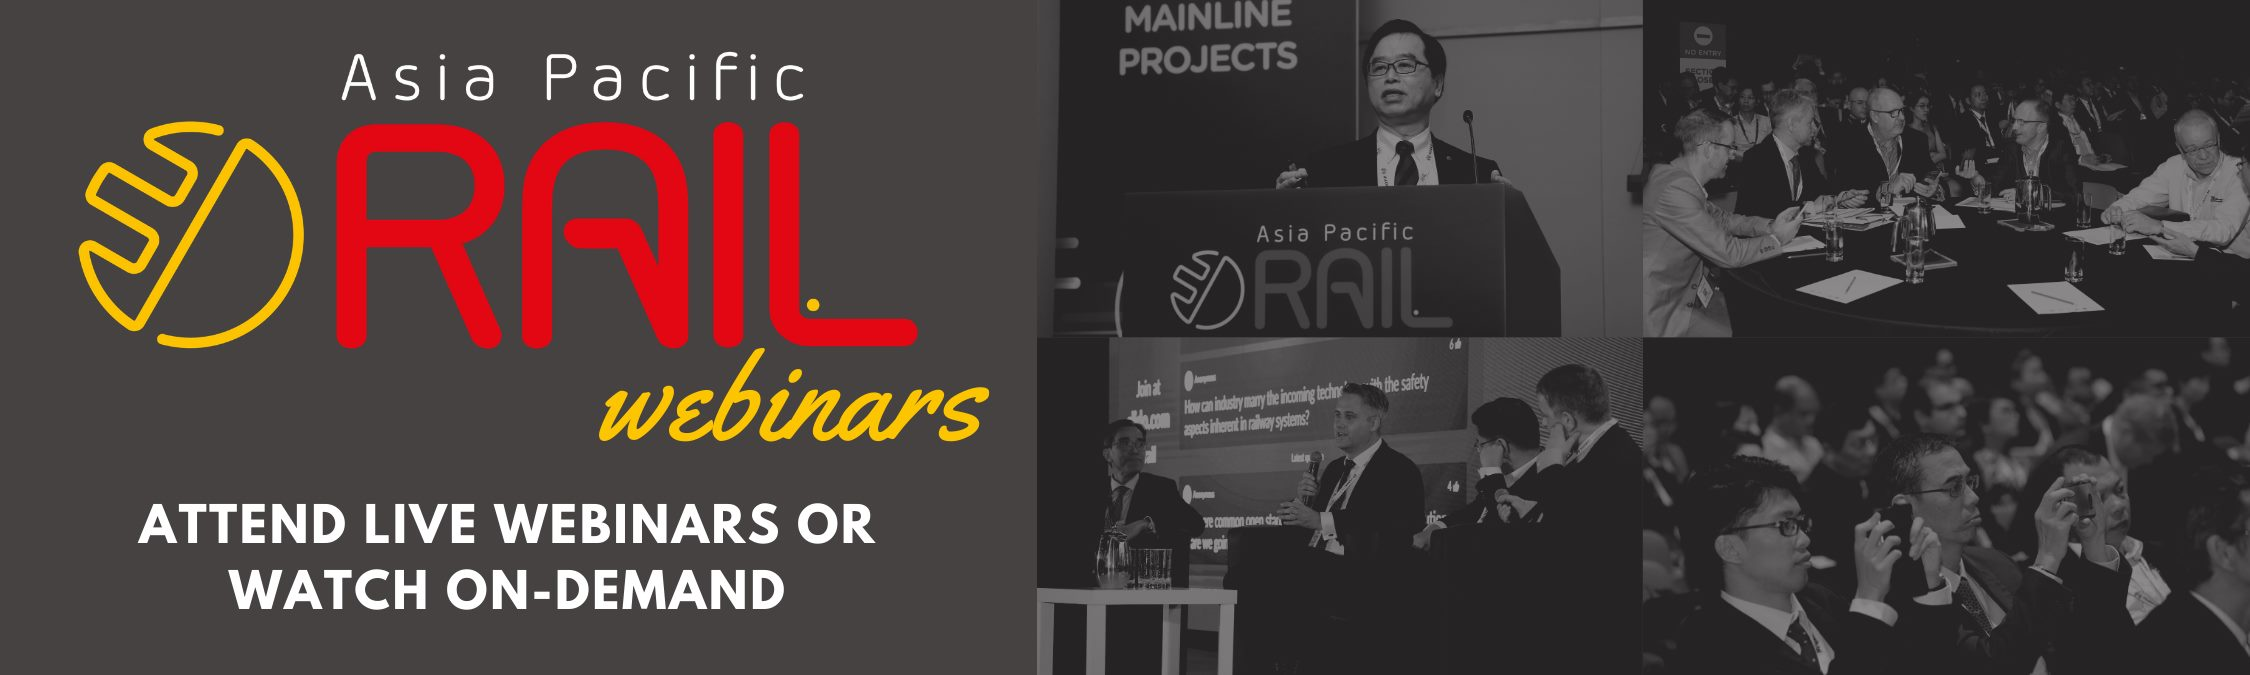 #AsiaPacificRail Webinar Series